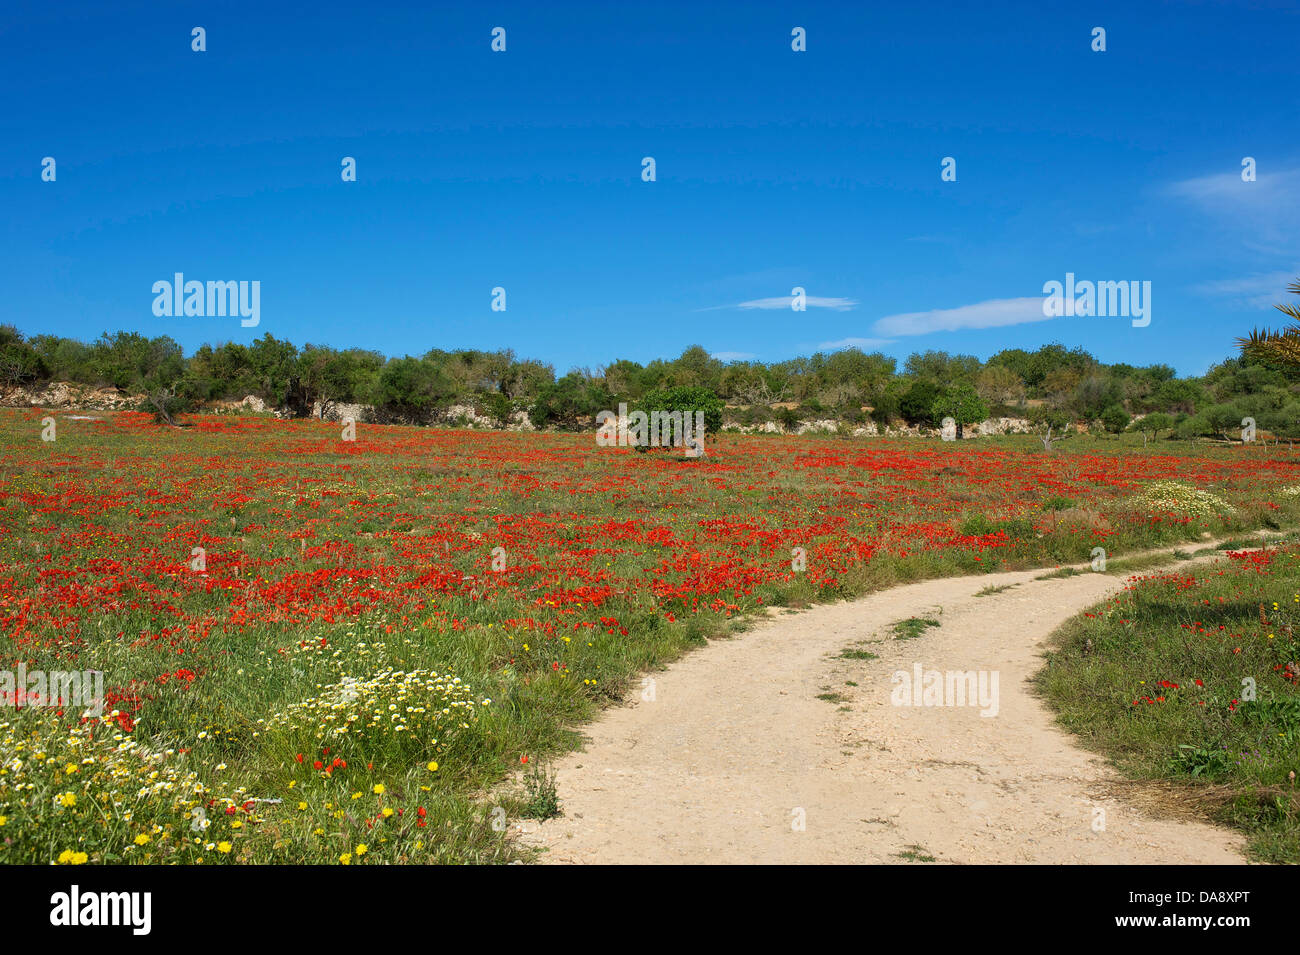 Balearic Islands, Majorca, Mallorca, Spain, Europe, outside, Finca, Fincas, country house, country houses, poppy - Stock Image